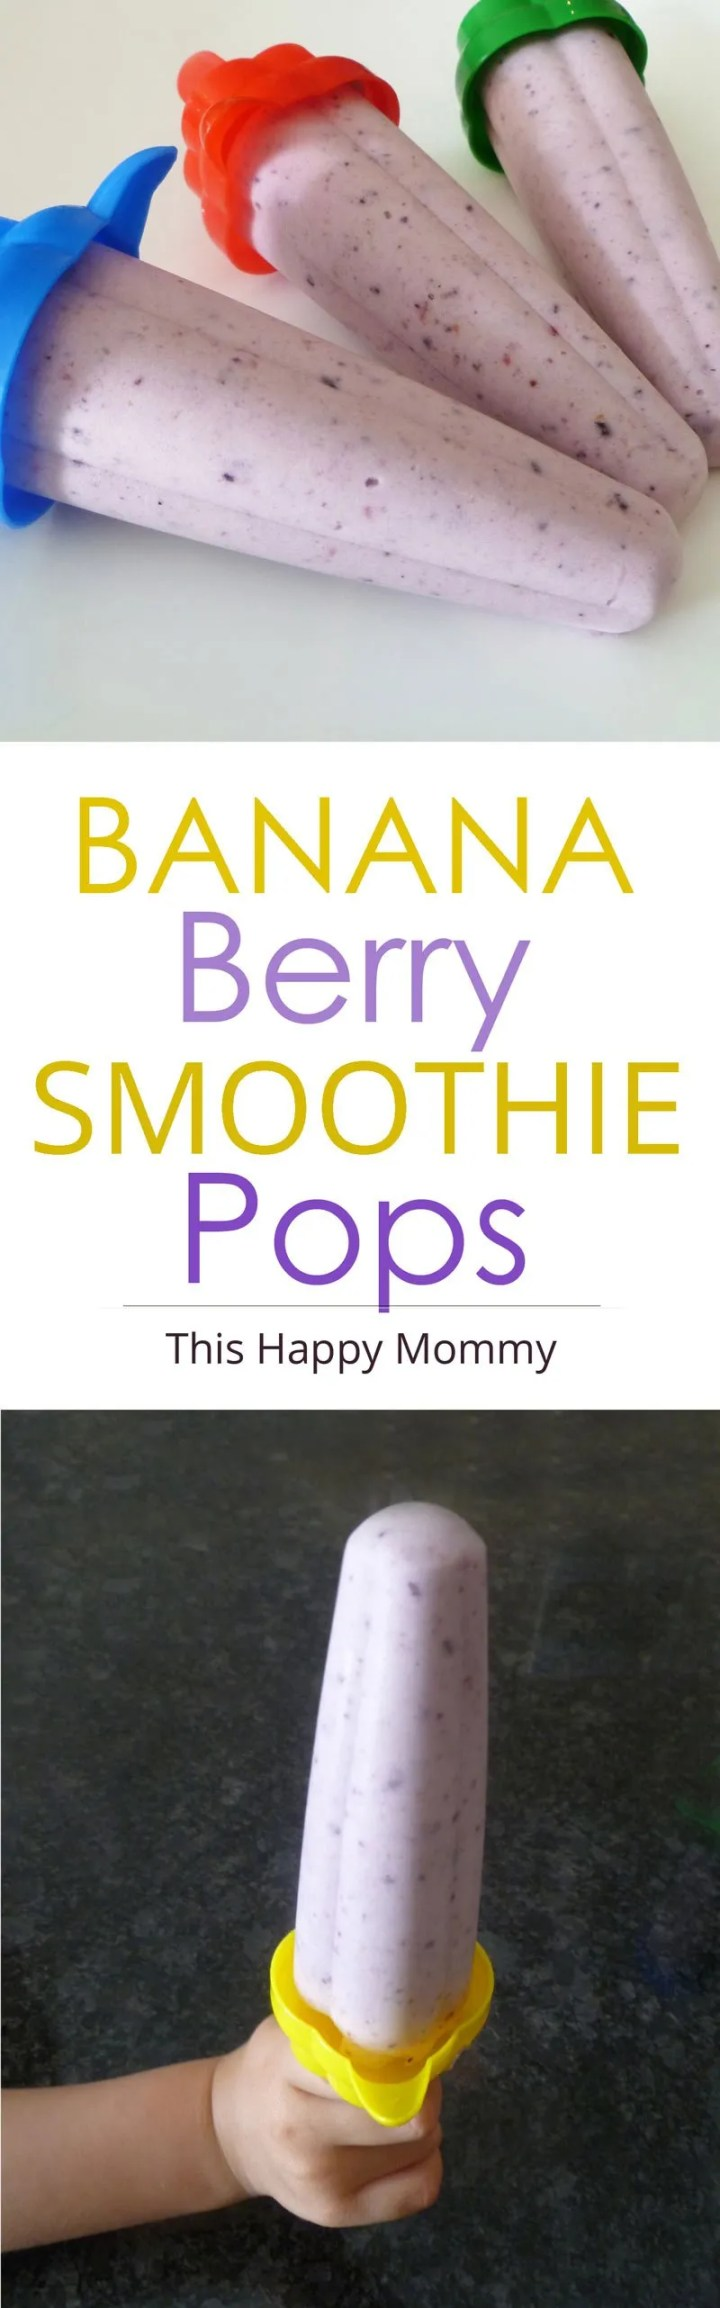 Banana Berry Smoothie Pops -- Stay cool all summer long with this four-ingredient, smoothie style popsicle. | Easy Snack Ideas | Kid Approved Snacks | Quick and Easy Greek Yogurt Smoothie | #smoothie #recipe #summer #food | thishappymommy.com